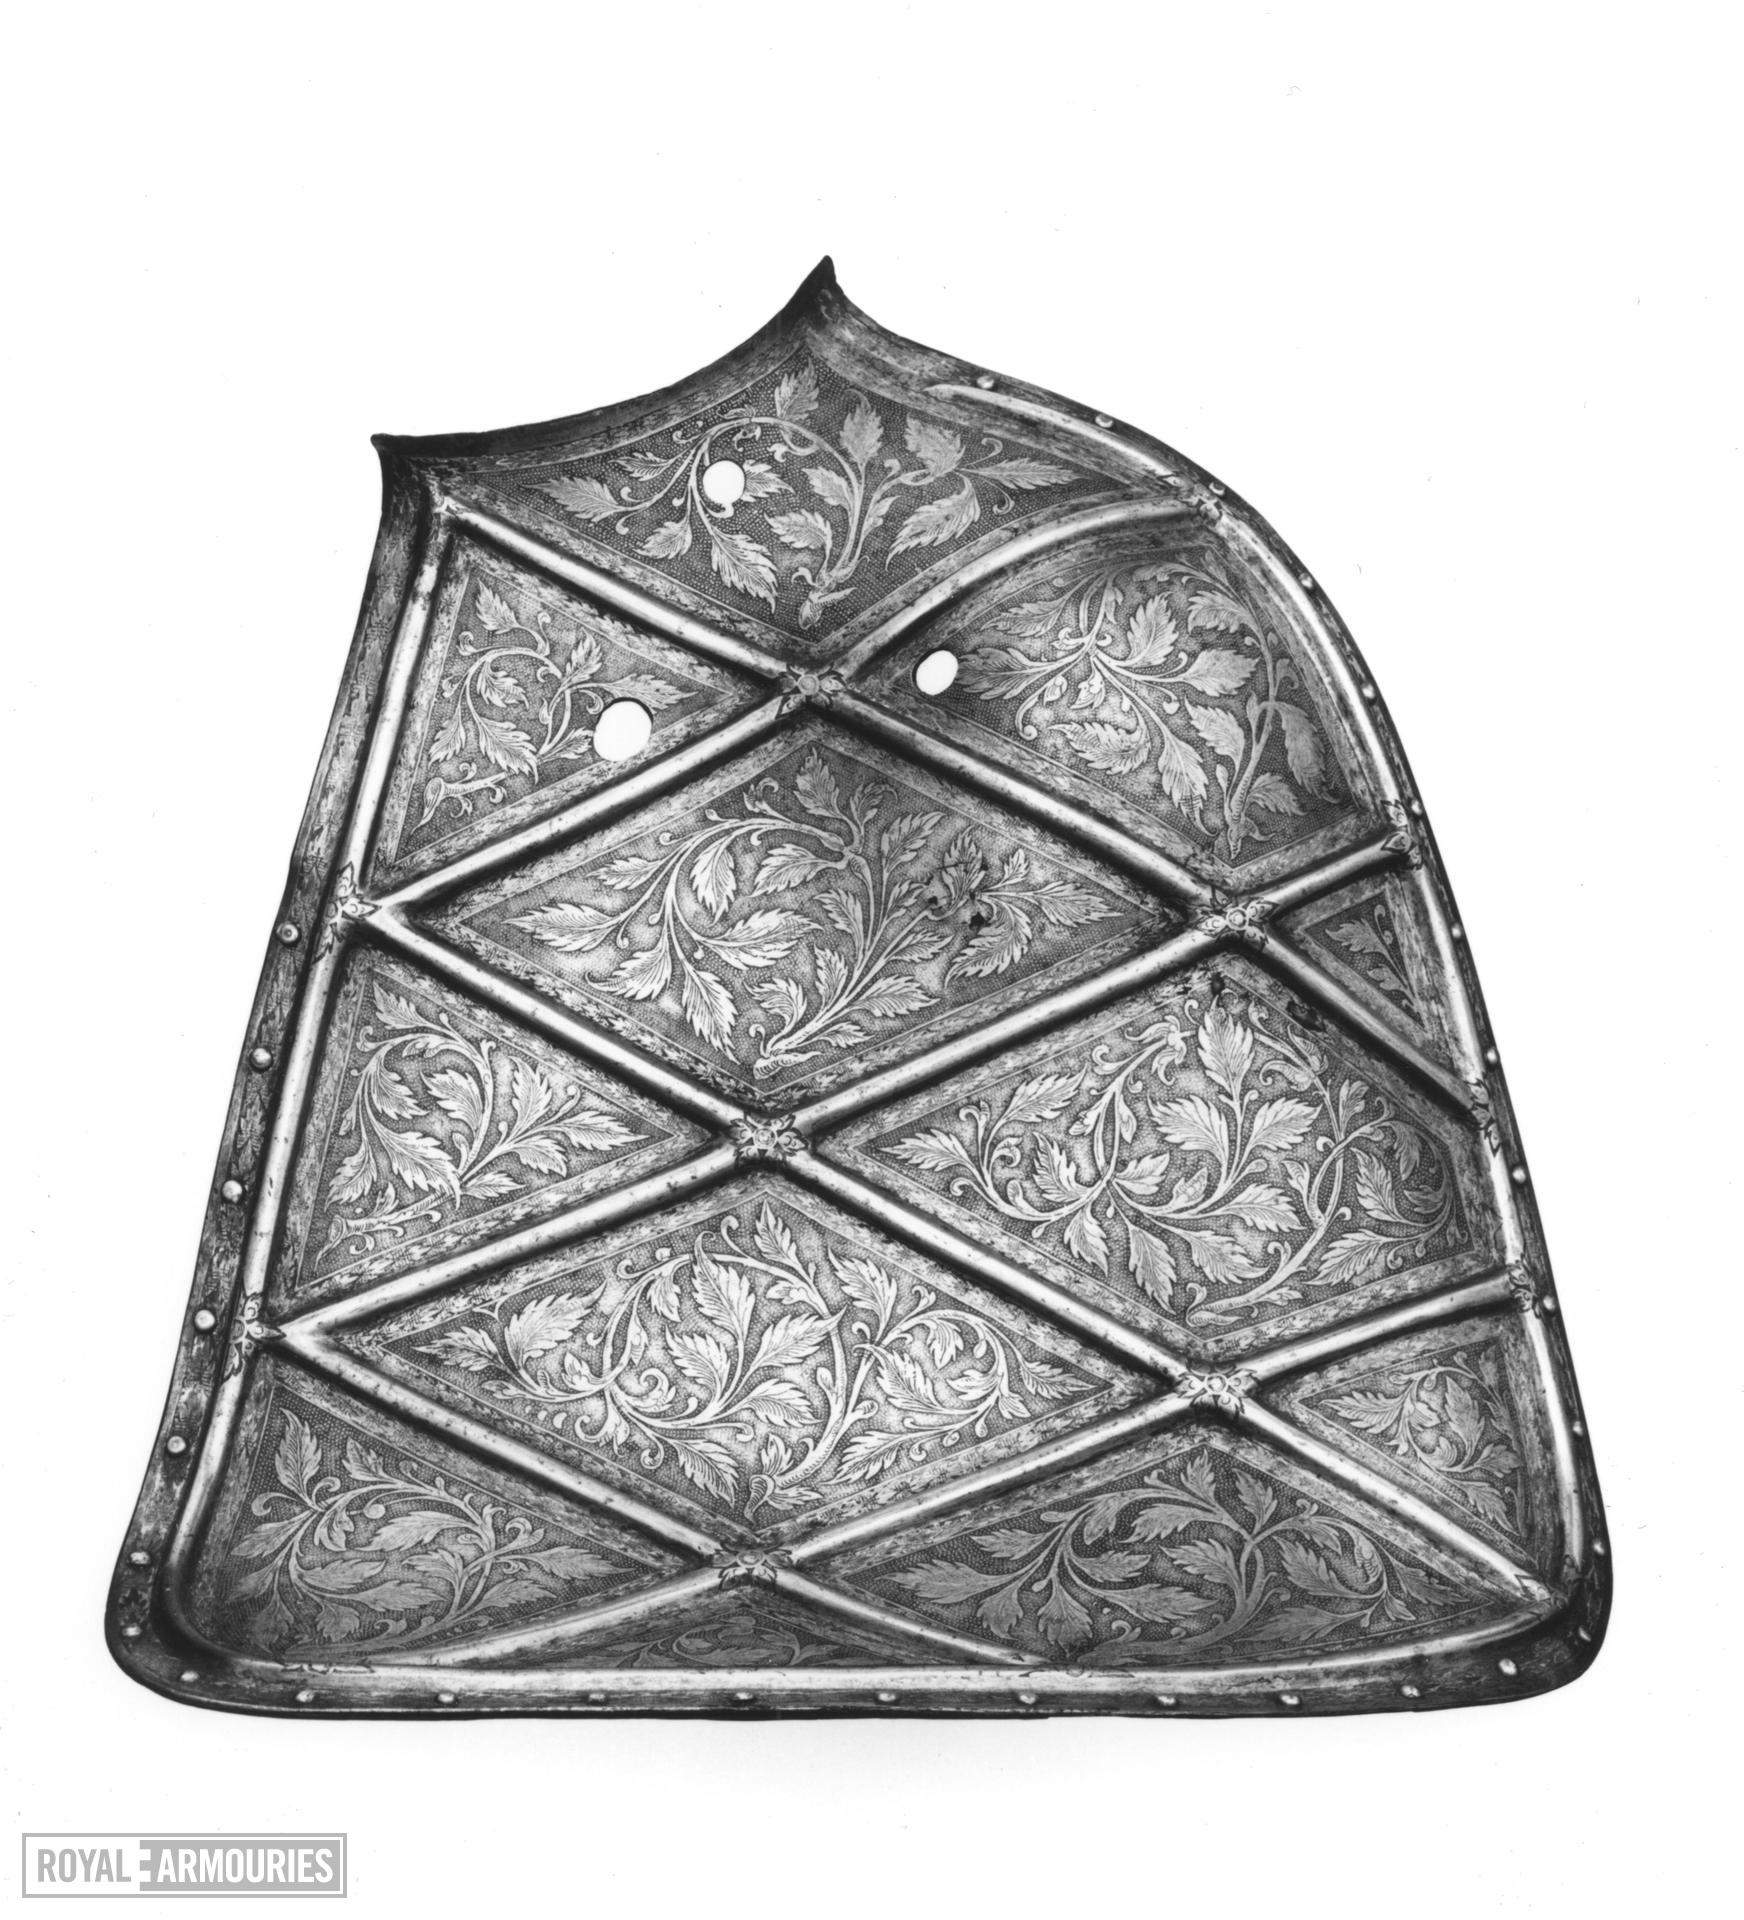 Shoulder shield For the Plankengestech, from the Rose-leaf garniture of the Emperor Maximilian II, made by Franz Grosschedel.